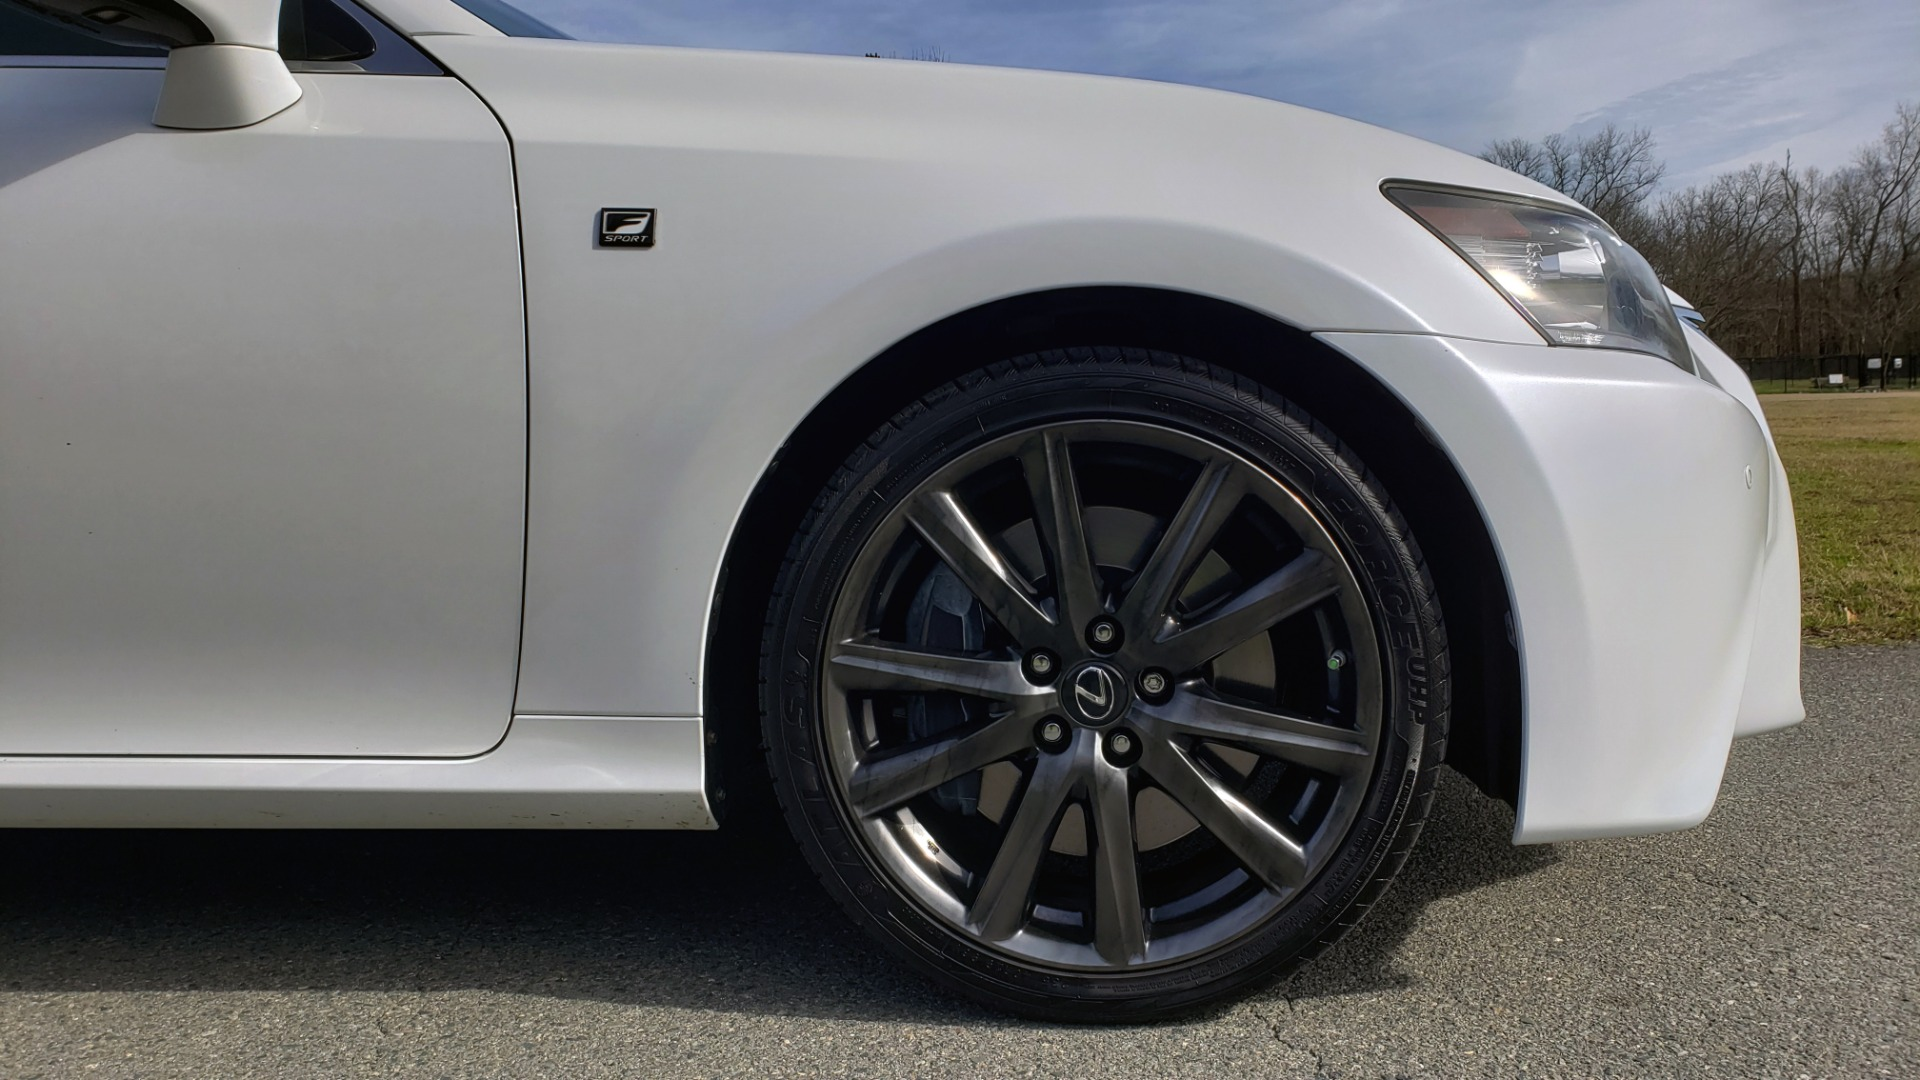 Used 2013 Lexus GS 350 F-SPORT / NAV / SUNROOF / BSM / PRK ASST / REARVIEW for sale Sold at Formula Imports in Charlotte NC 28227 79